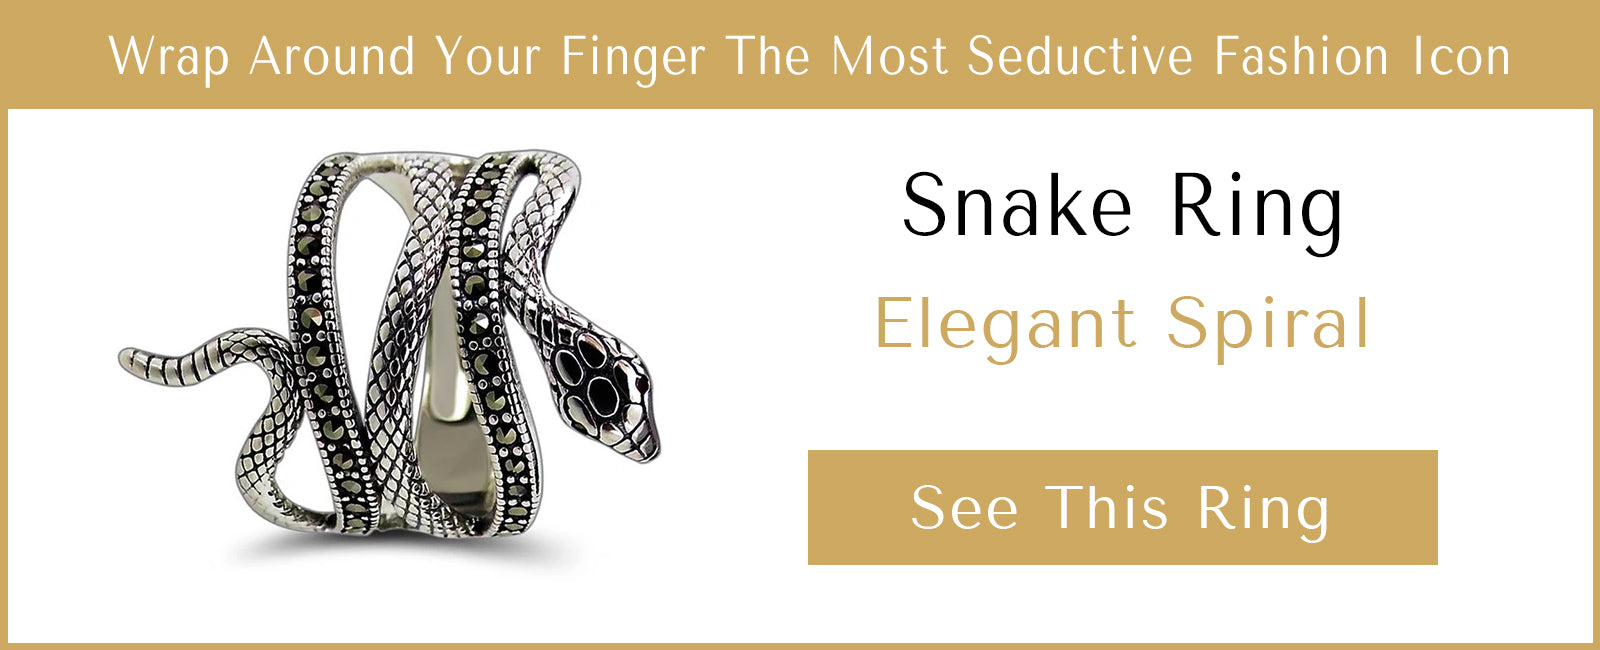 See one of our snake rings